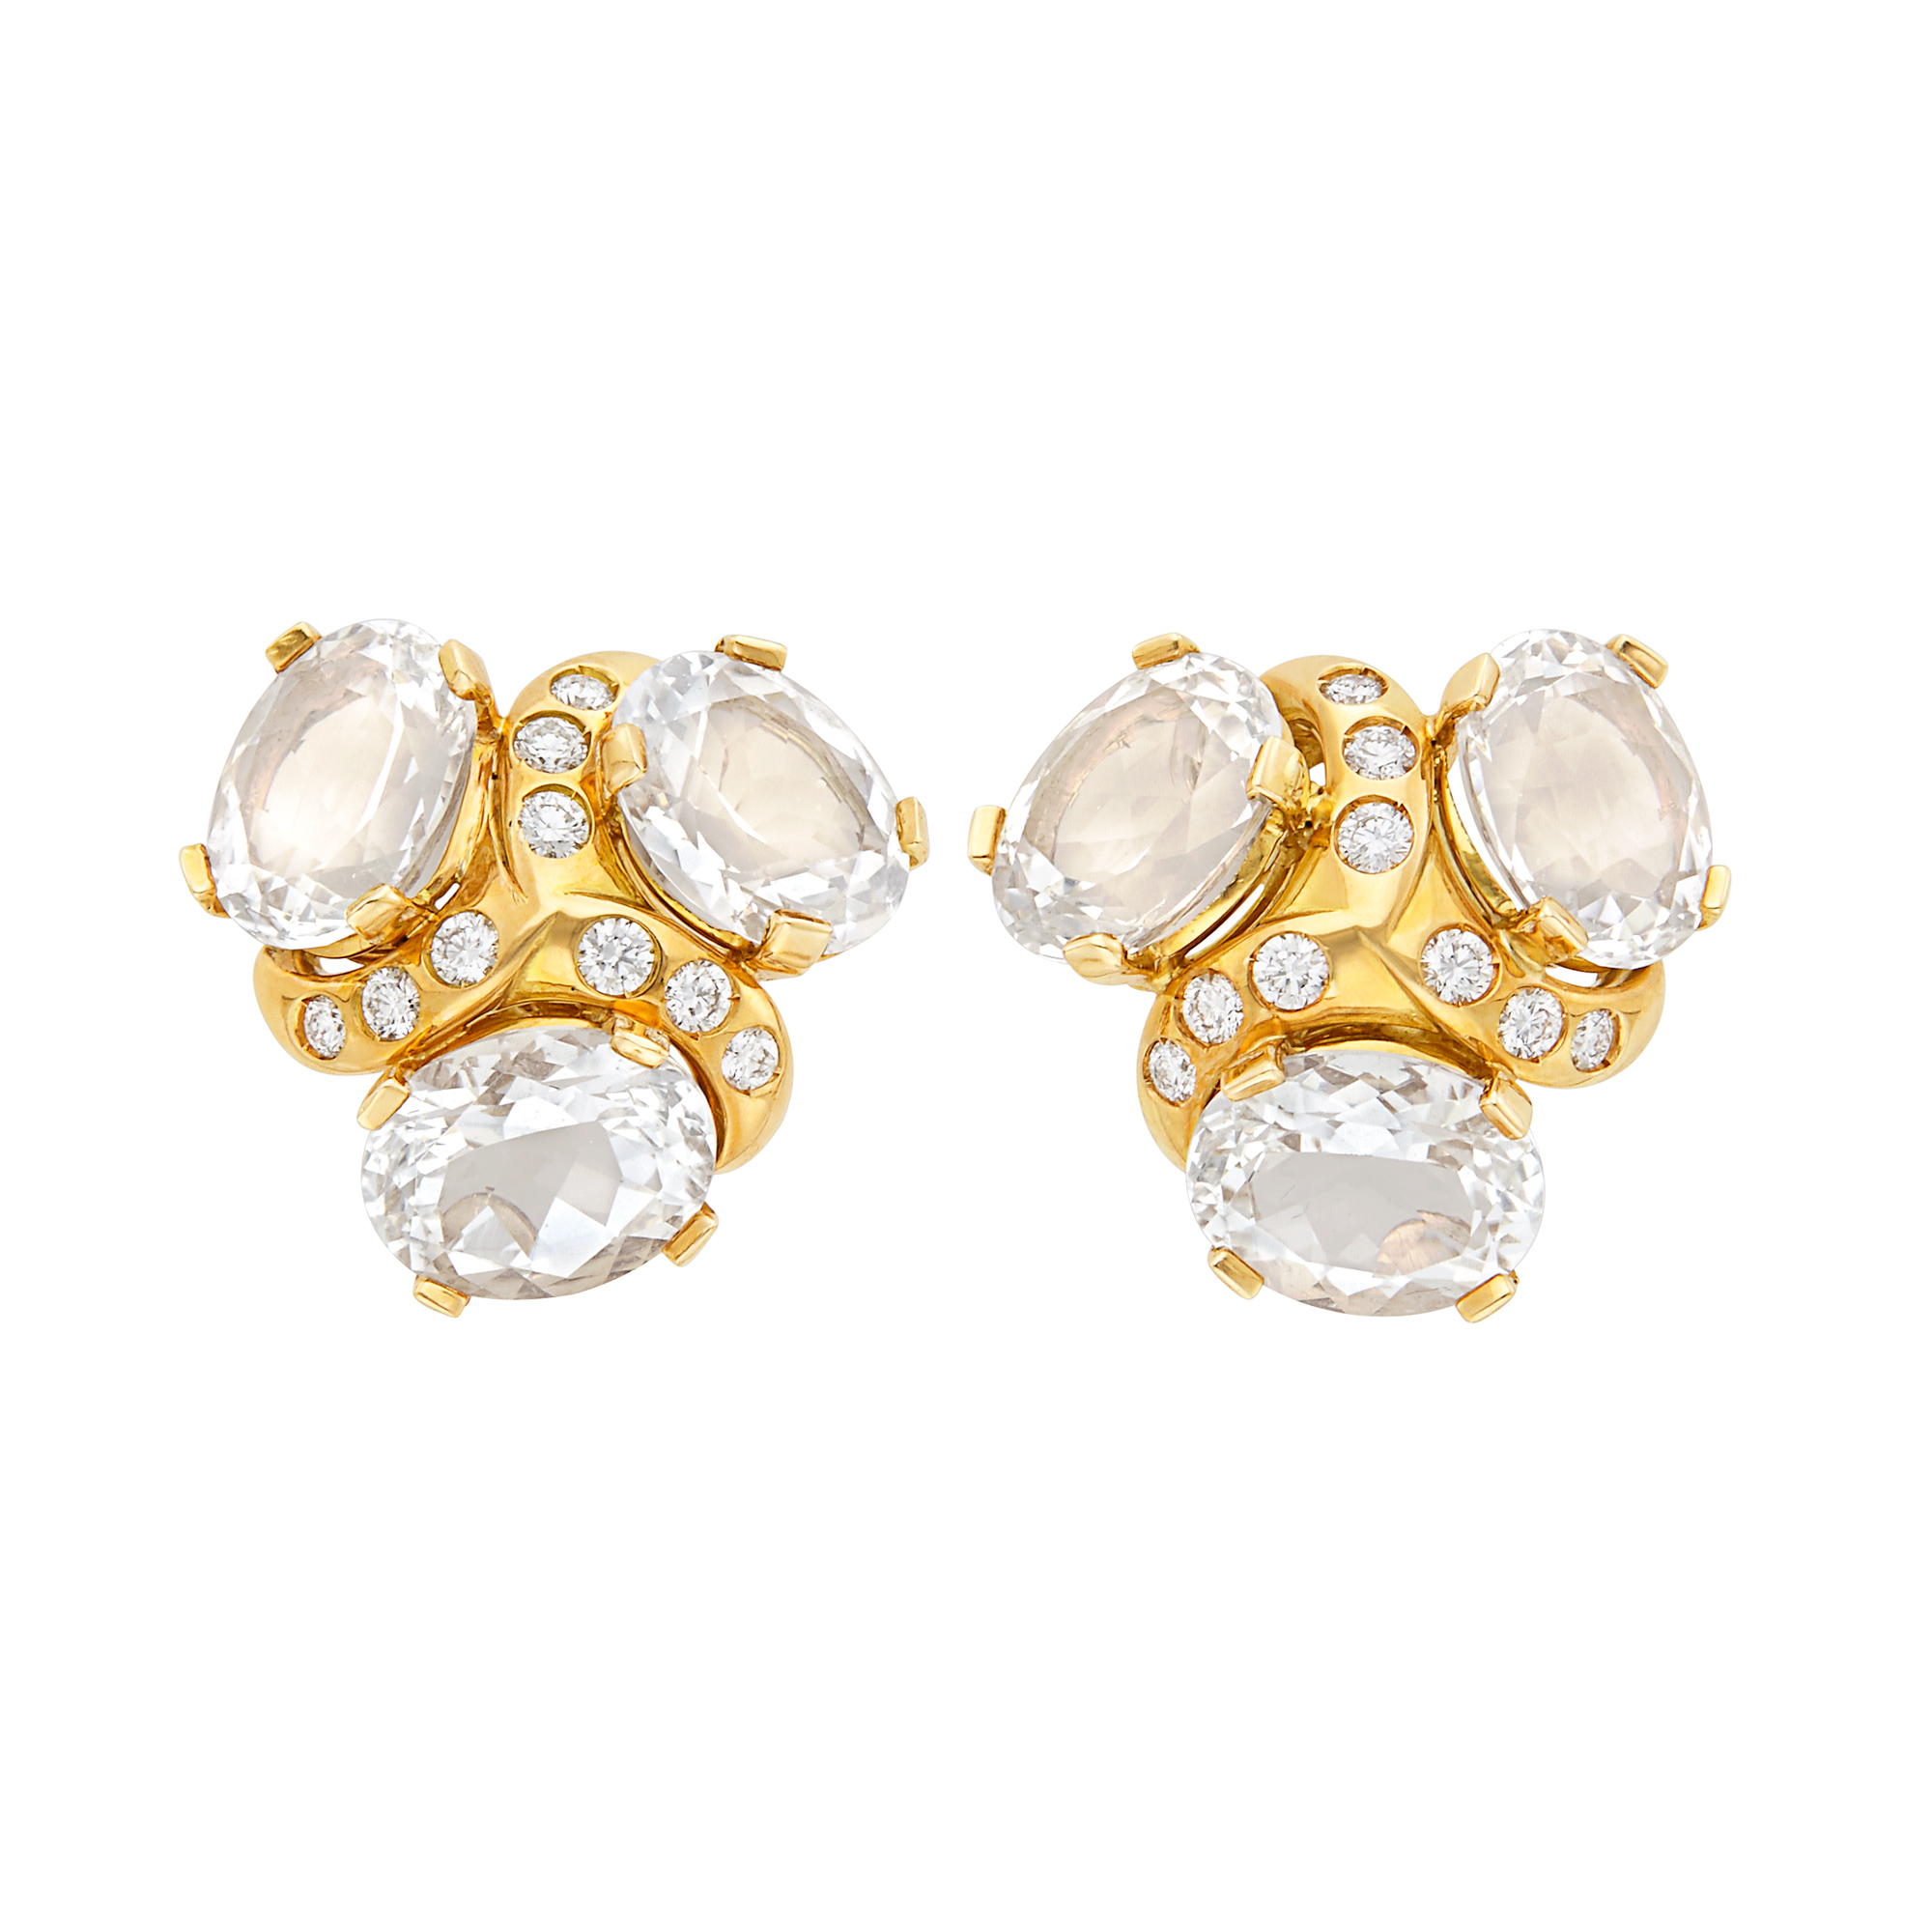 Lot image - Pair of Gold, Rock Crystal and Diamond Earclips, Verdura